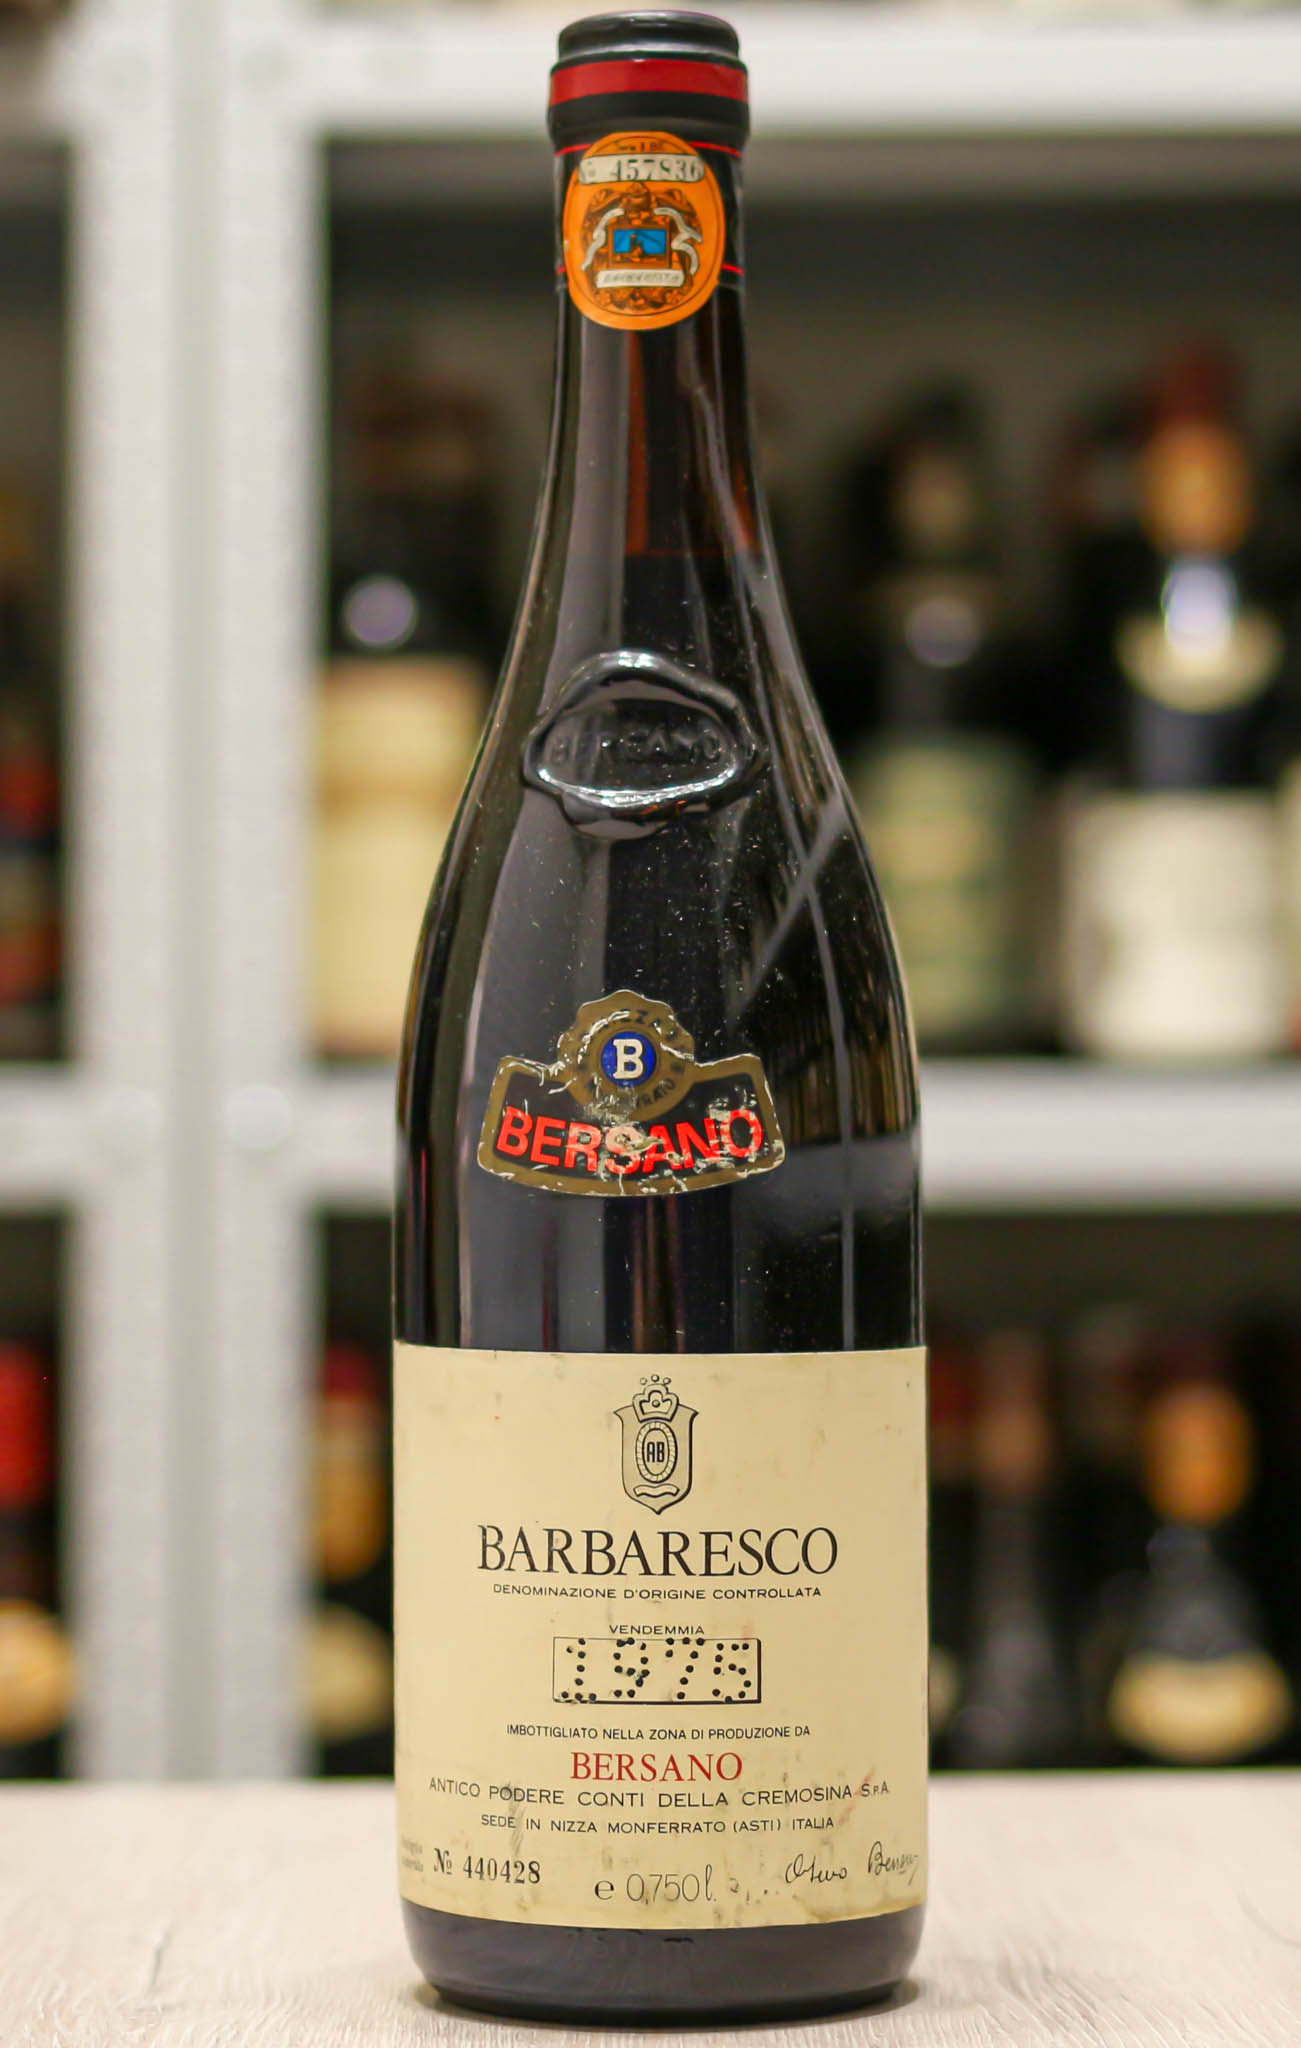 Красное вино Barbaresco Bersano урожая 1975 года